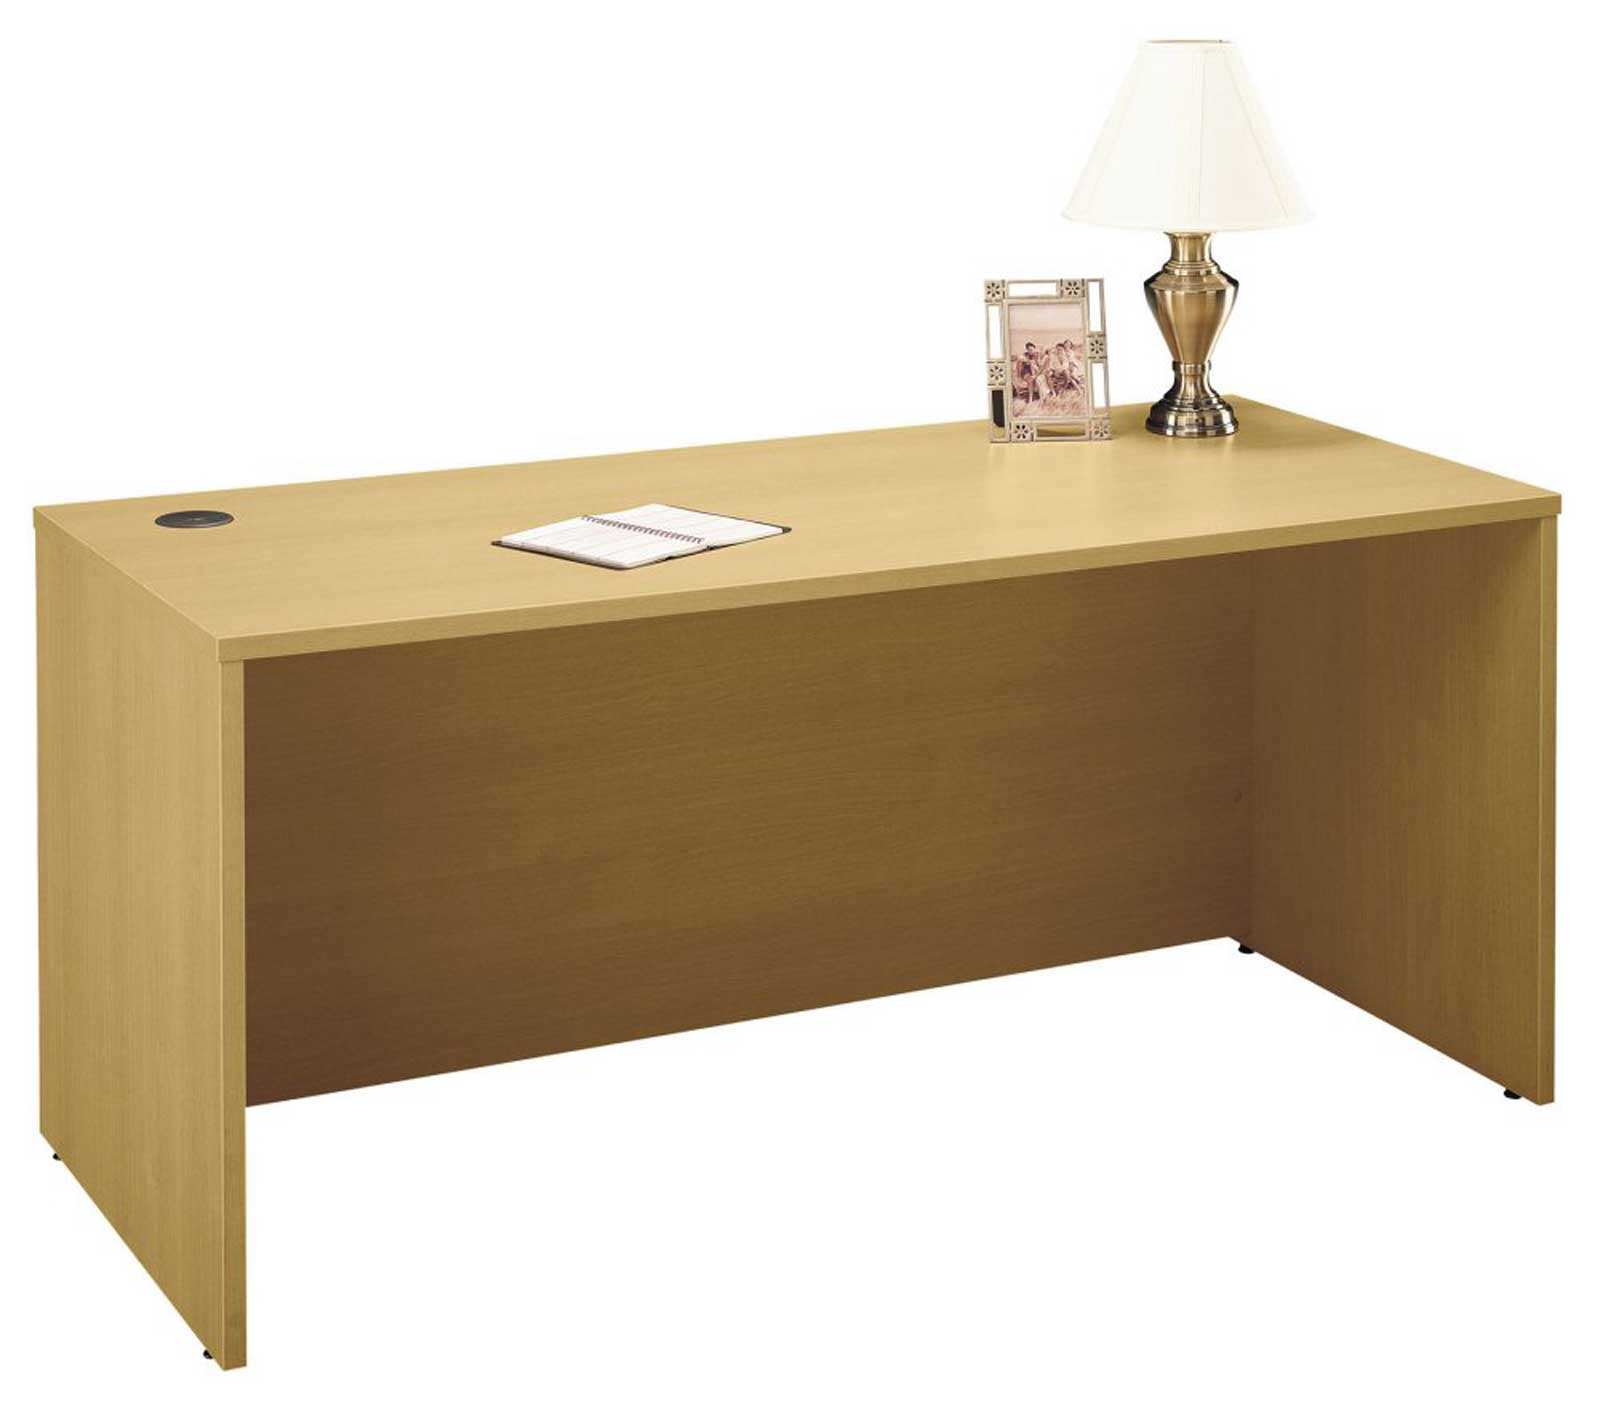 Bush C Series Light Weight Oak Desk Collection